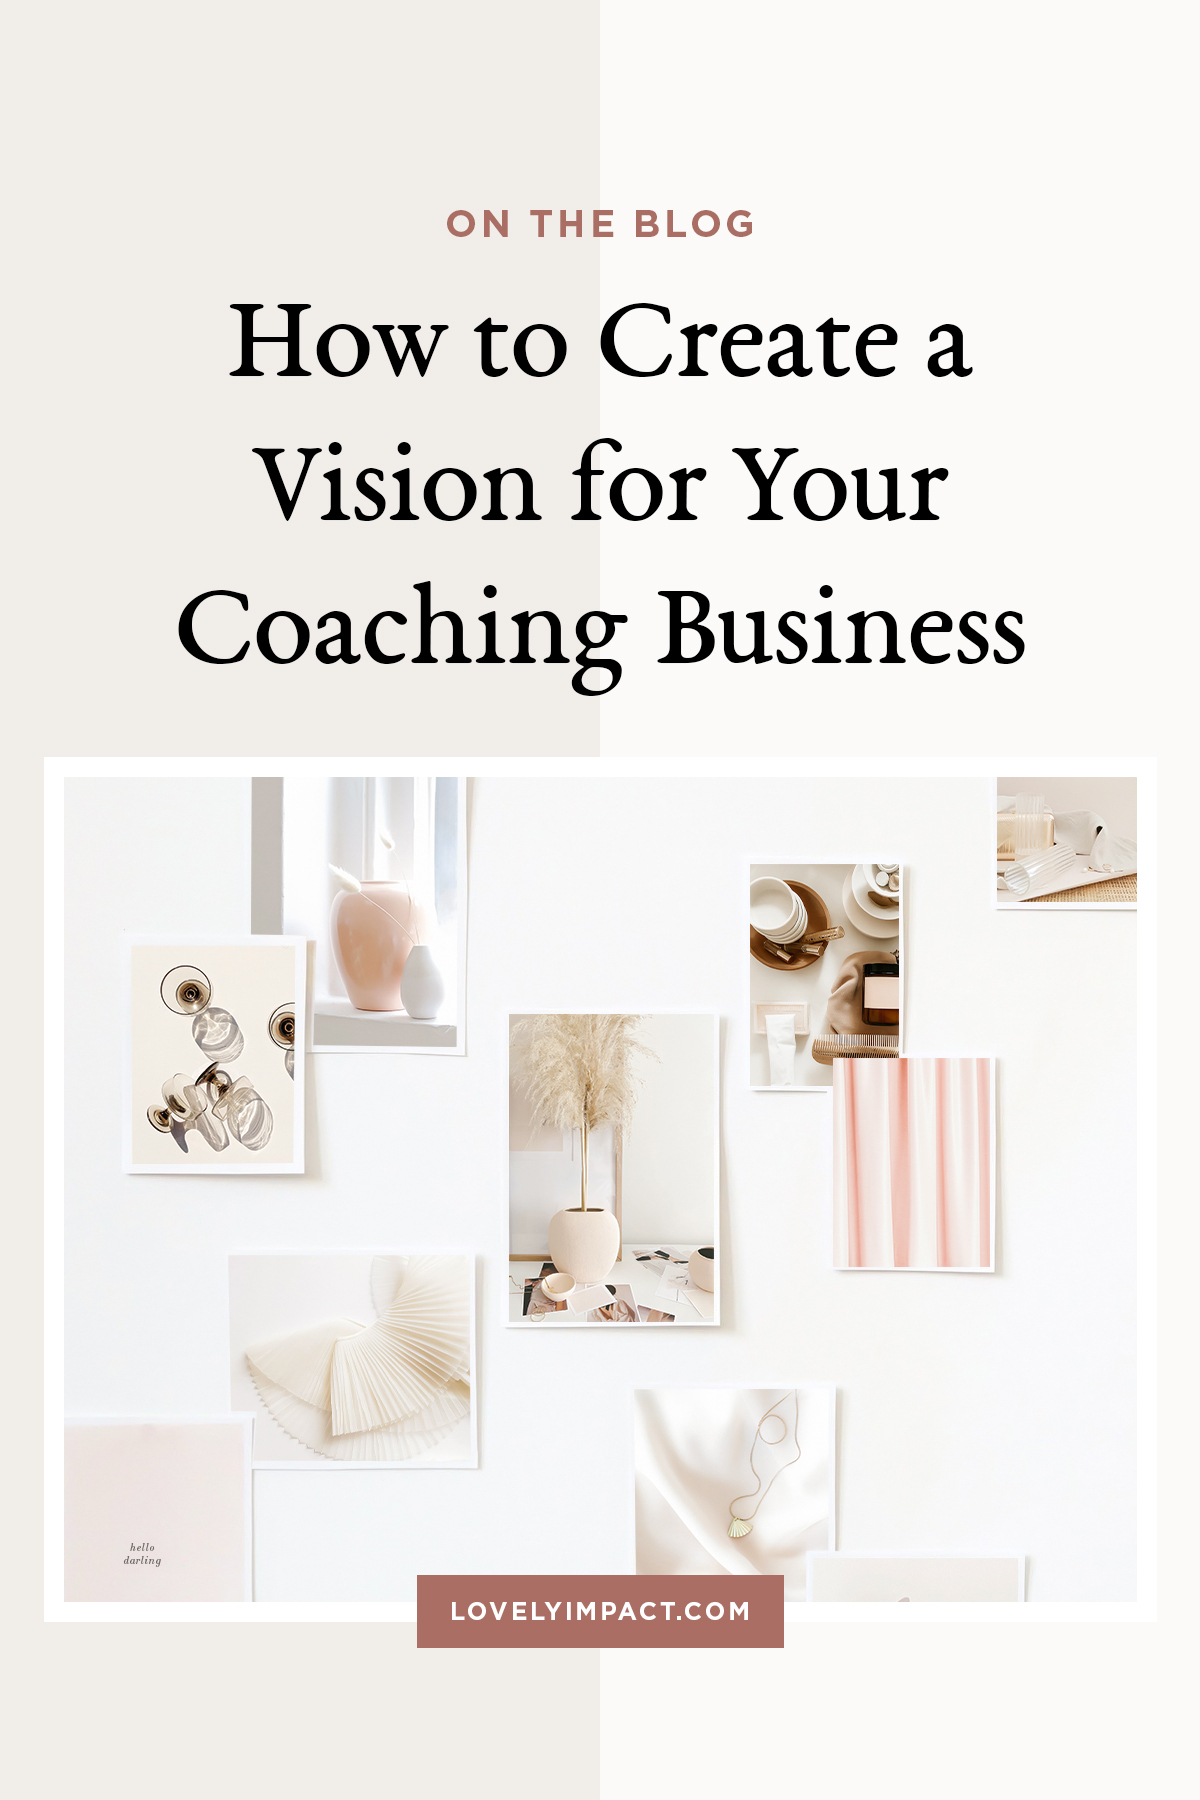 How to Create a Vision for Your Coaching Business